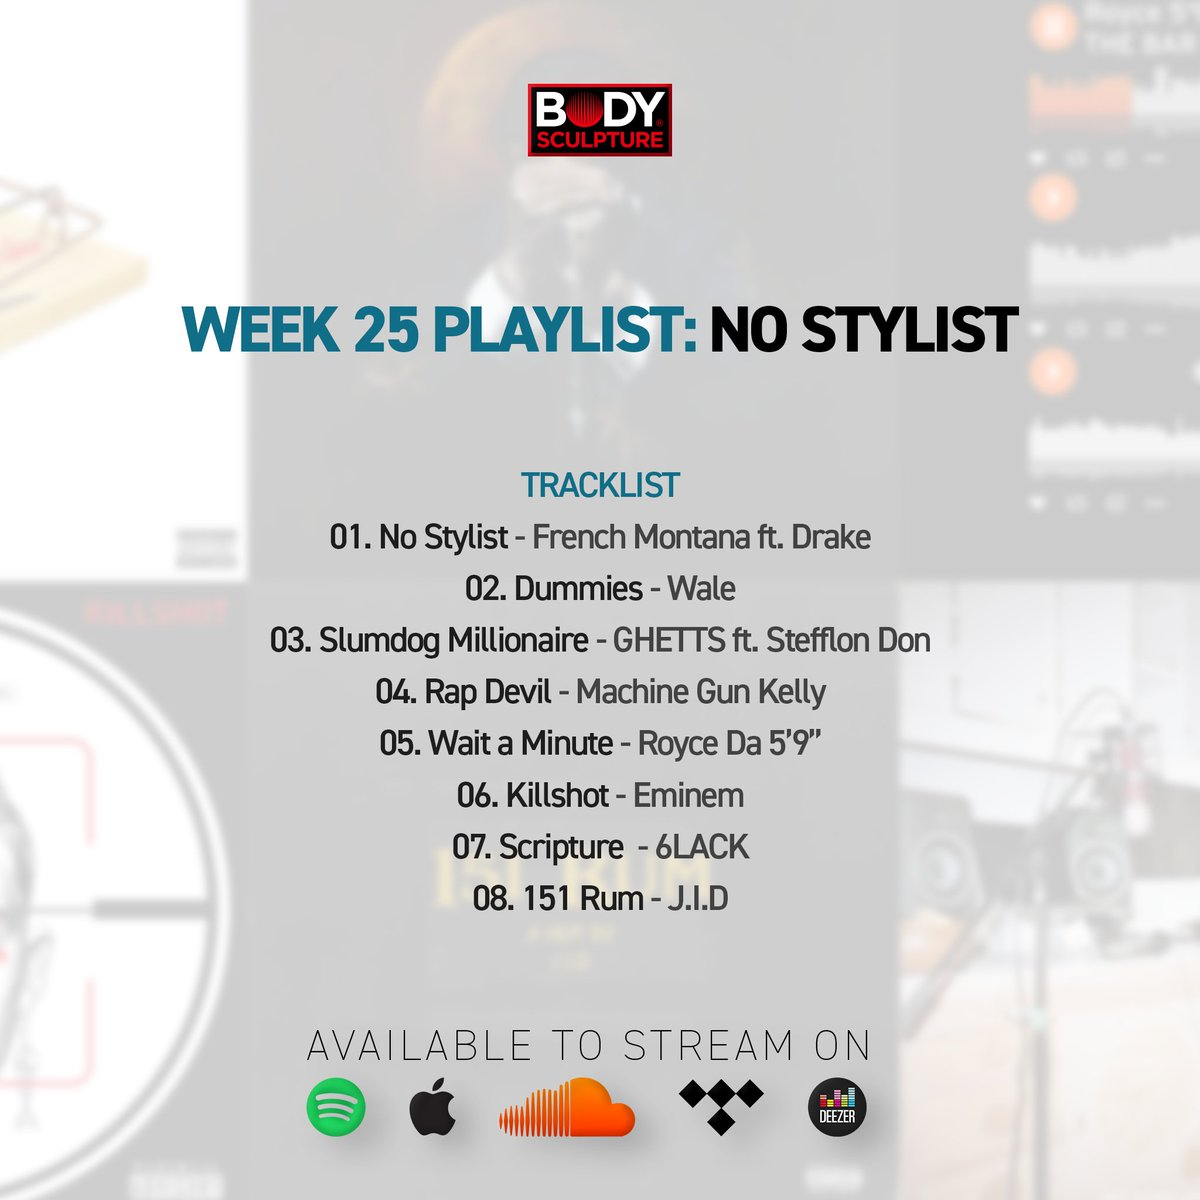 Body Sculpture On Twitter Our Week 25 Playlist For Your